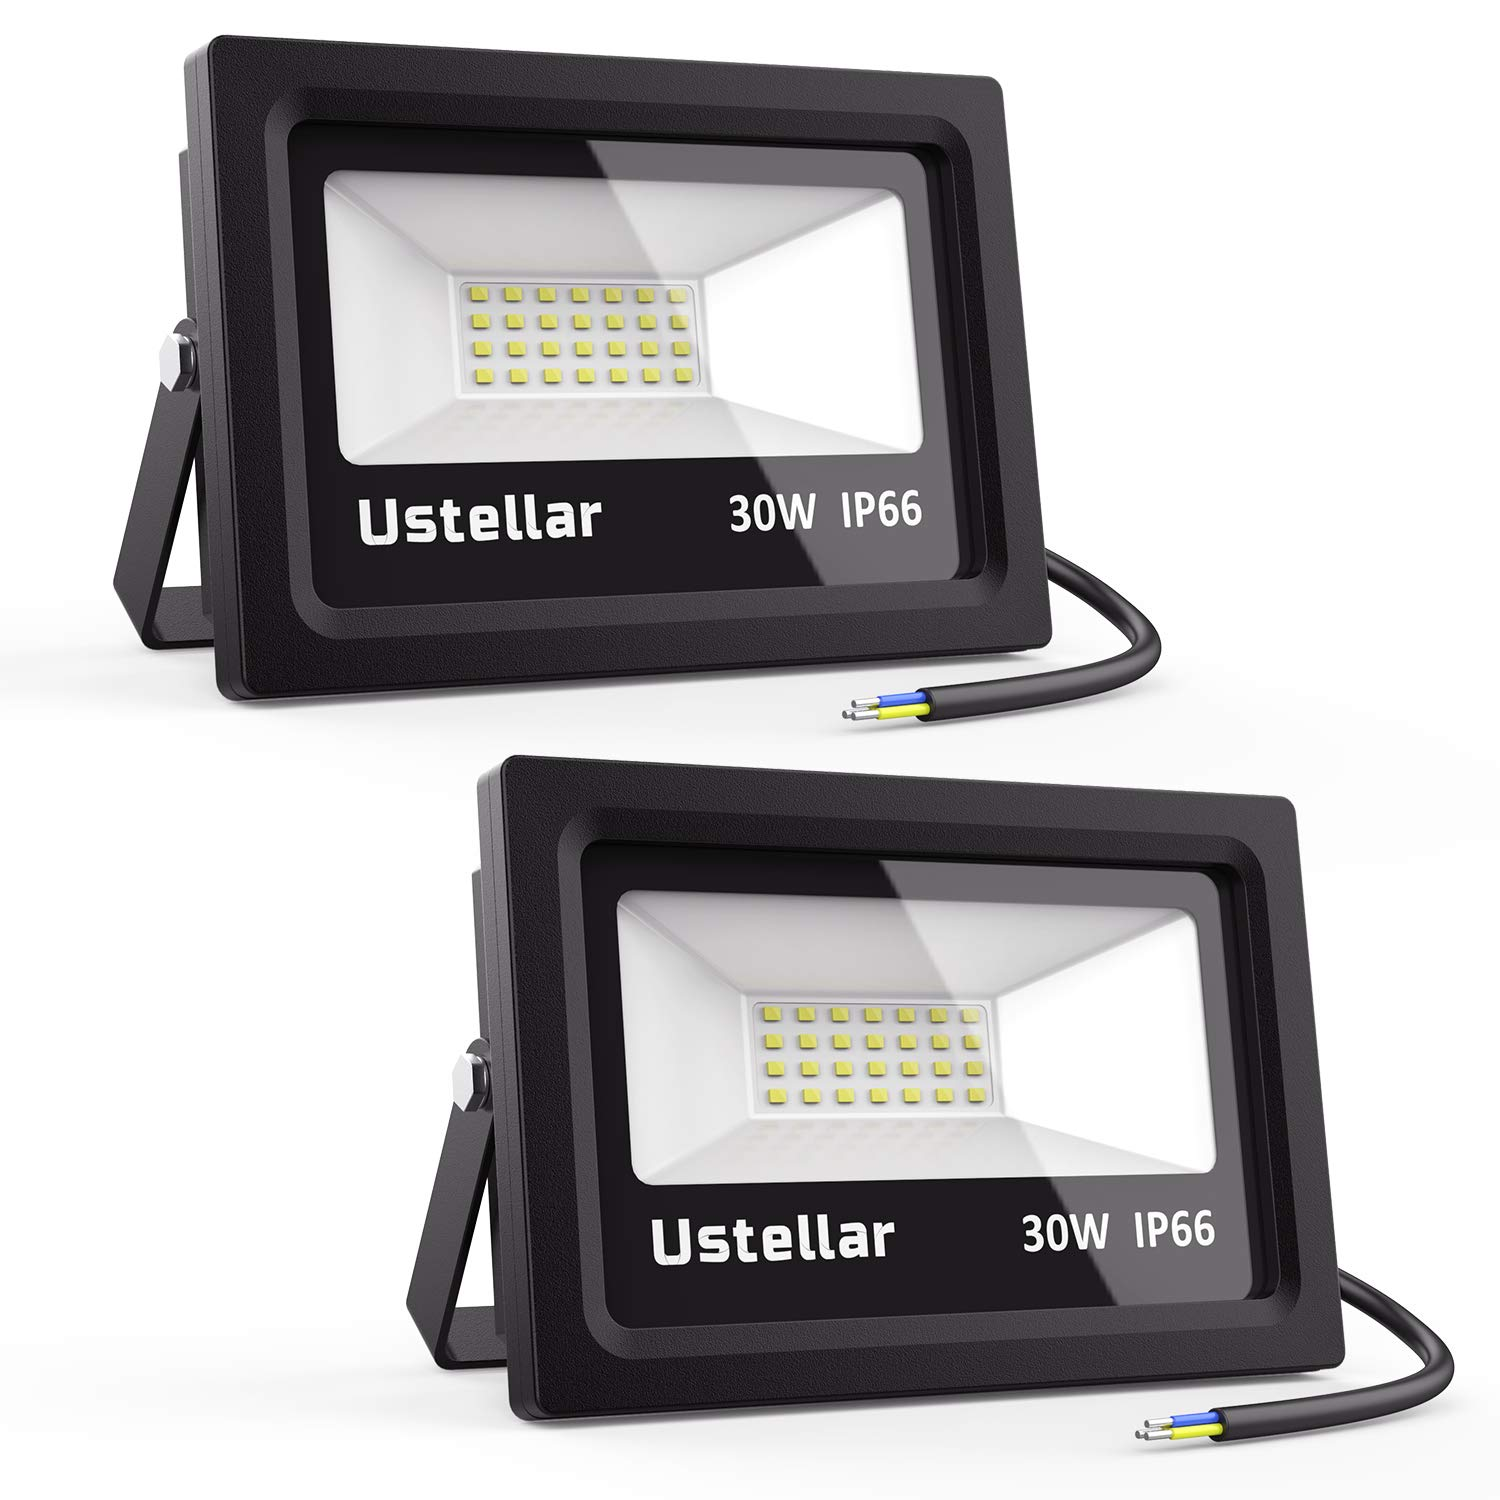 Ustellar 2 Pack 30W LED Flood Light IP66 Waterproof 2400lm 150W Halogen Bulb Equivalent Outdoor Super Bright Security Lights 5000K Daylight White Floodlight Landscape Wall Lights